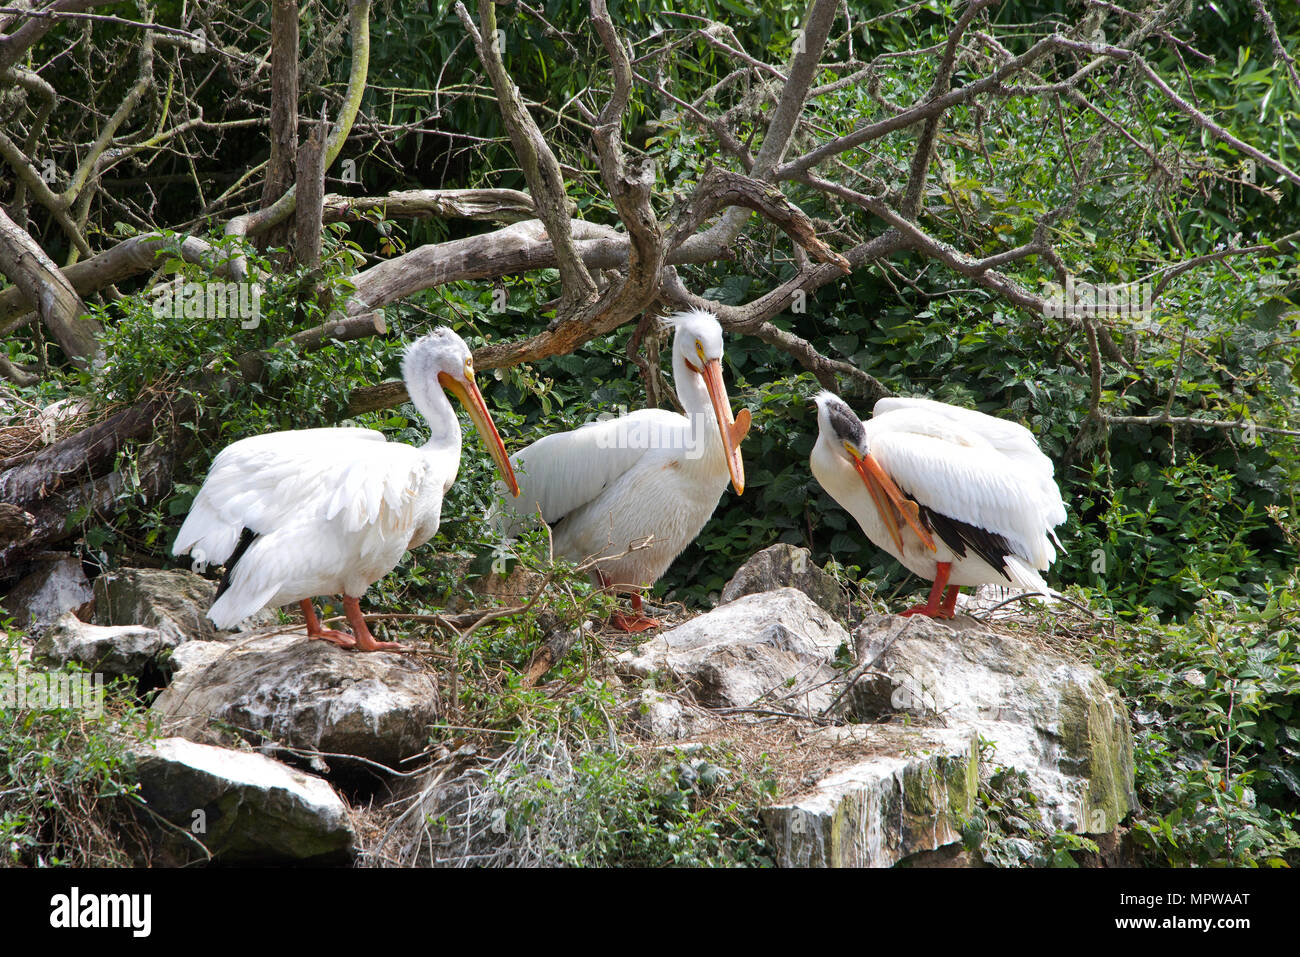 Three white pelicans with protrusions common to breeding season on their beaks, preening at the edge of a pond, old dead tree branch and leaves in bac Stock Photo